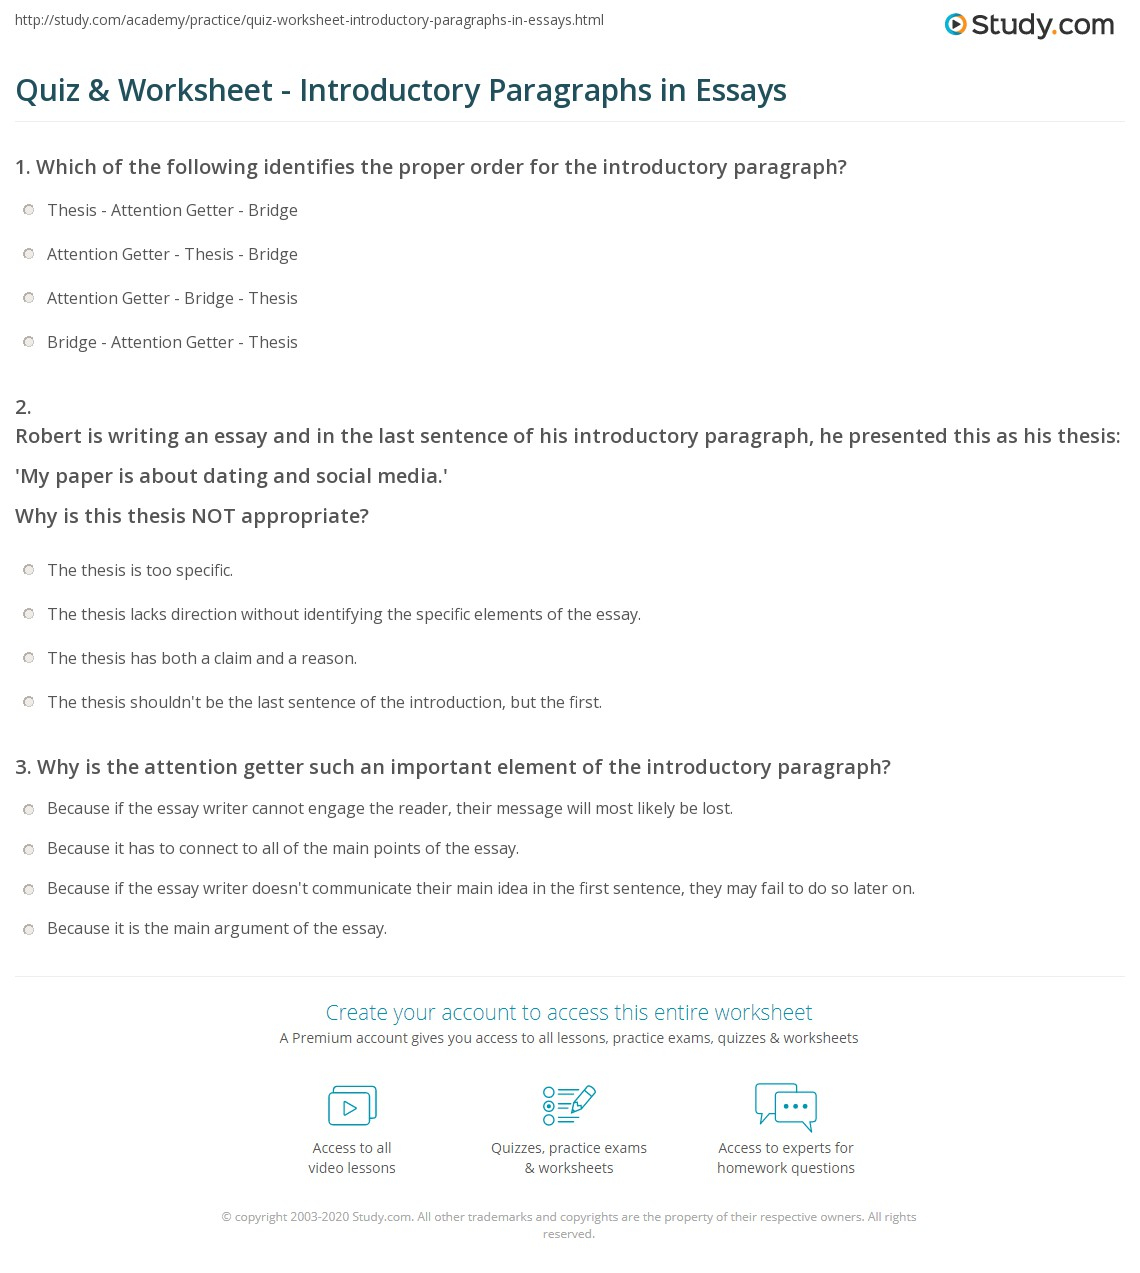 Quiz & Worksheet - Introductory Paragraphs In Essays | Study